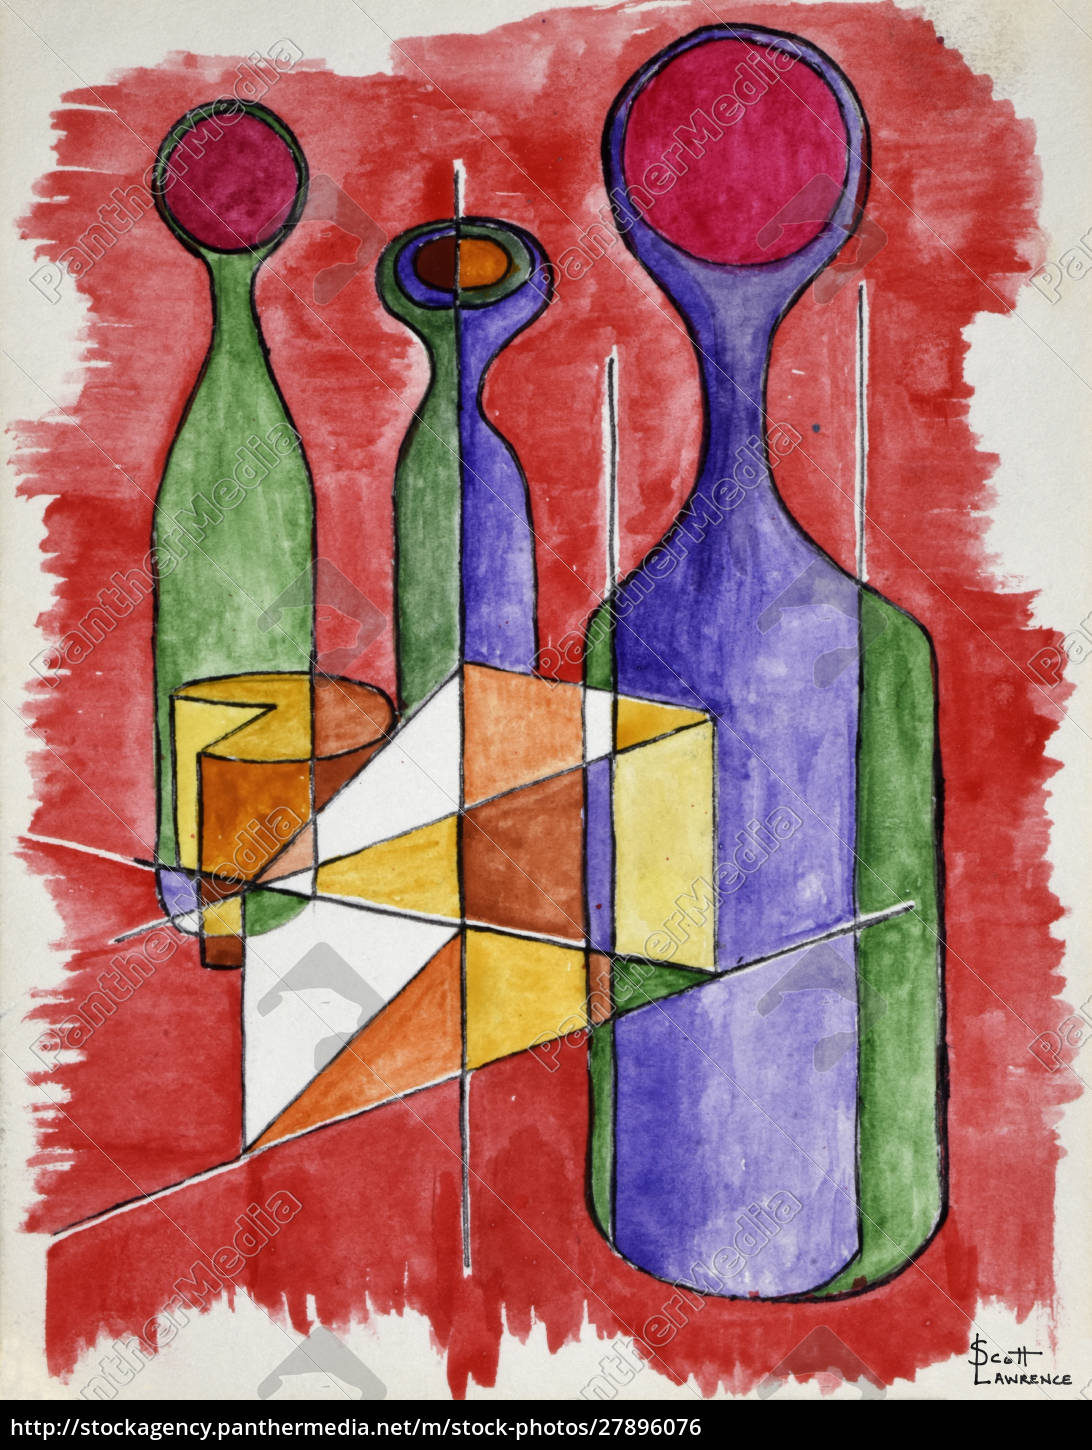 french, still, life-wine, and, cheese - 27896076